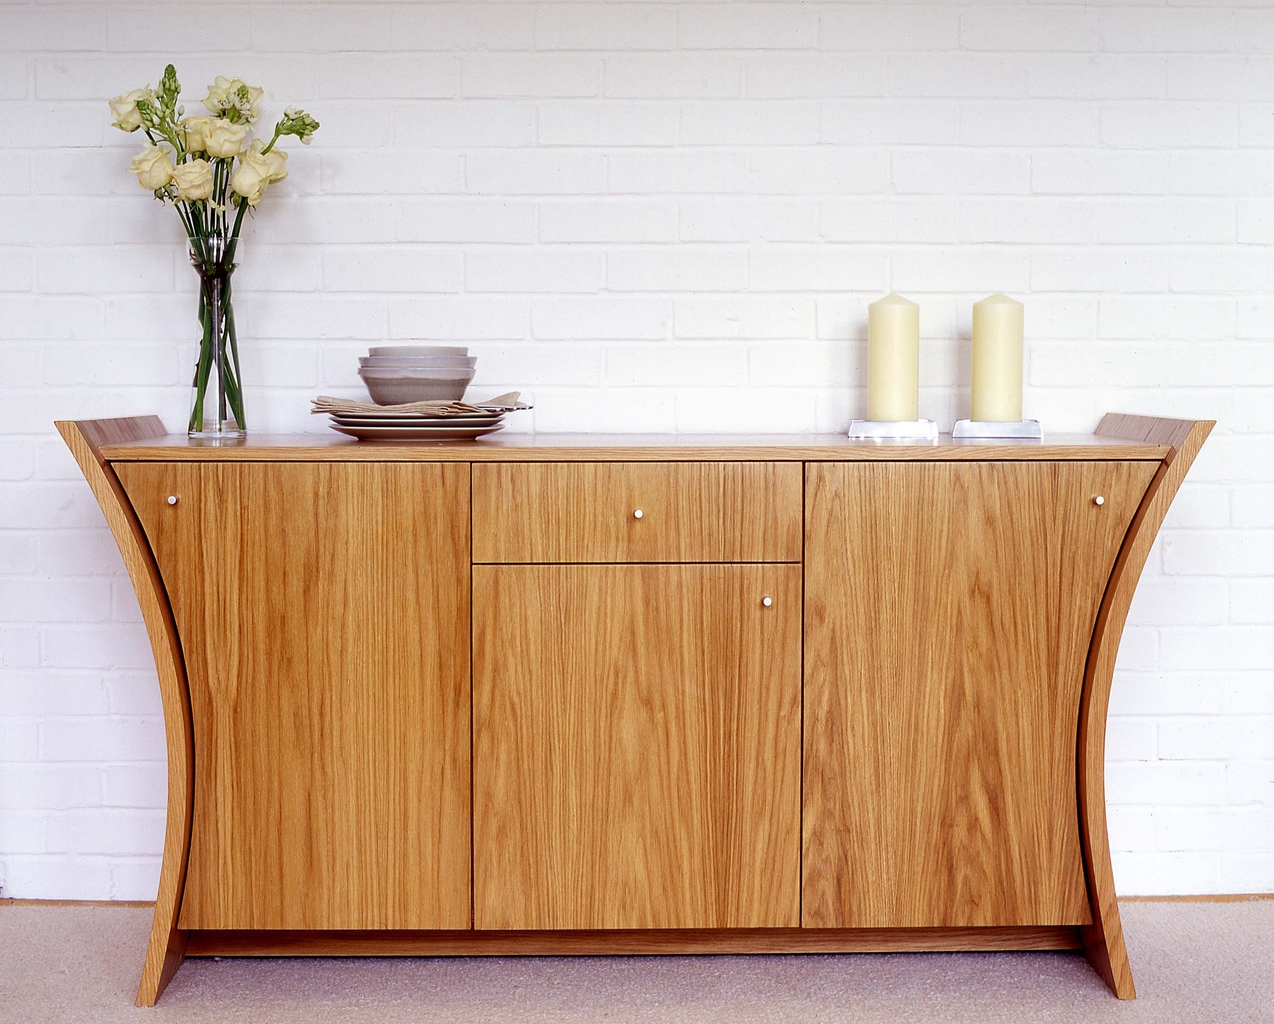 Contemporary Sideboard Cabinet — Optimizing Home Decor Ideas Pertaining To Contemporary Sideboard Cabinets (View 8 of 30)